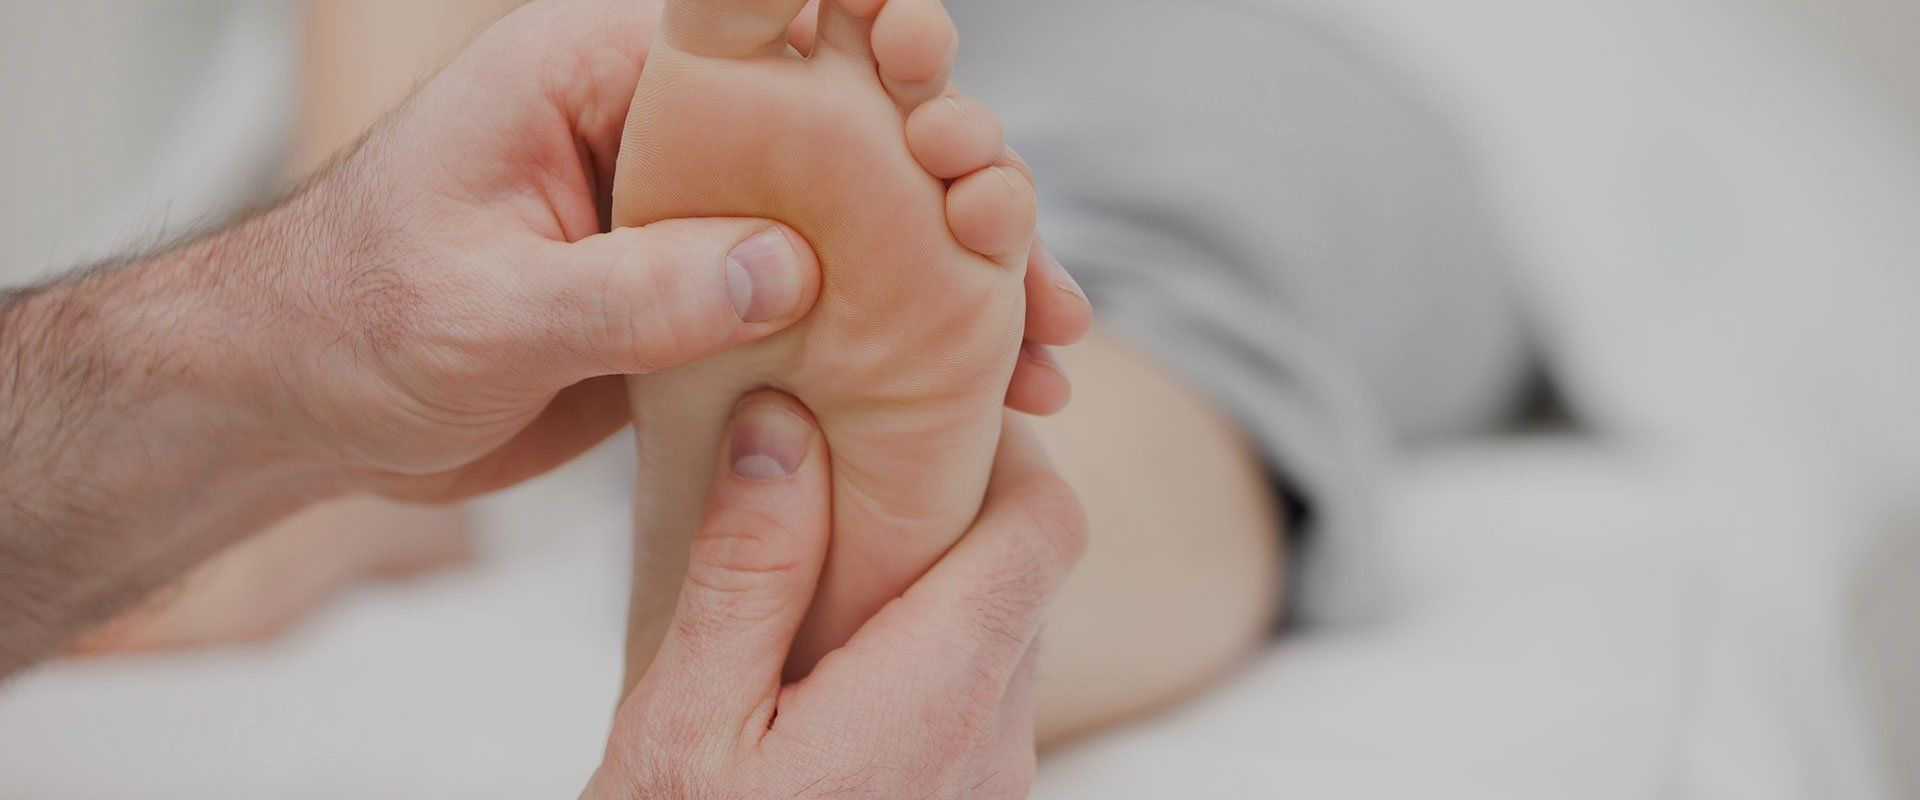 foot doctor checking patient foot because of painful symptoms